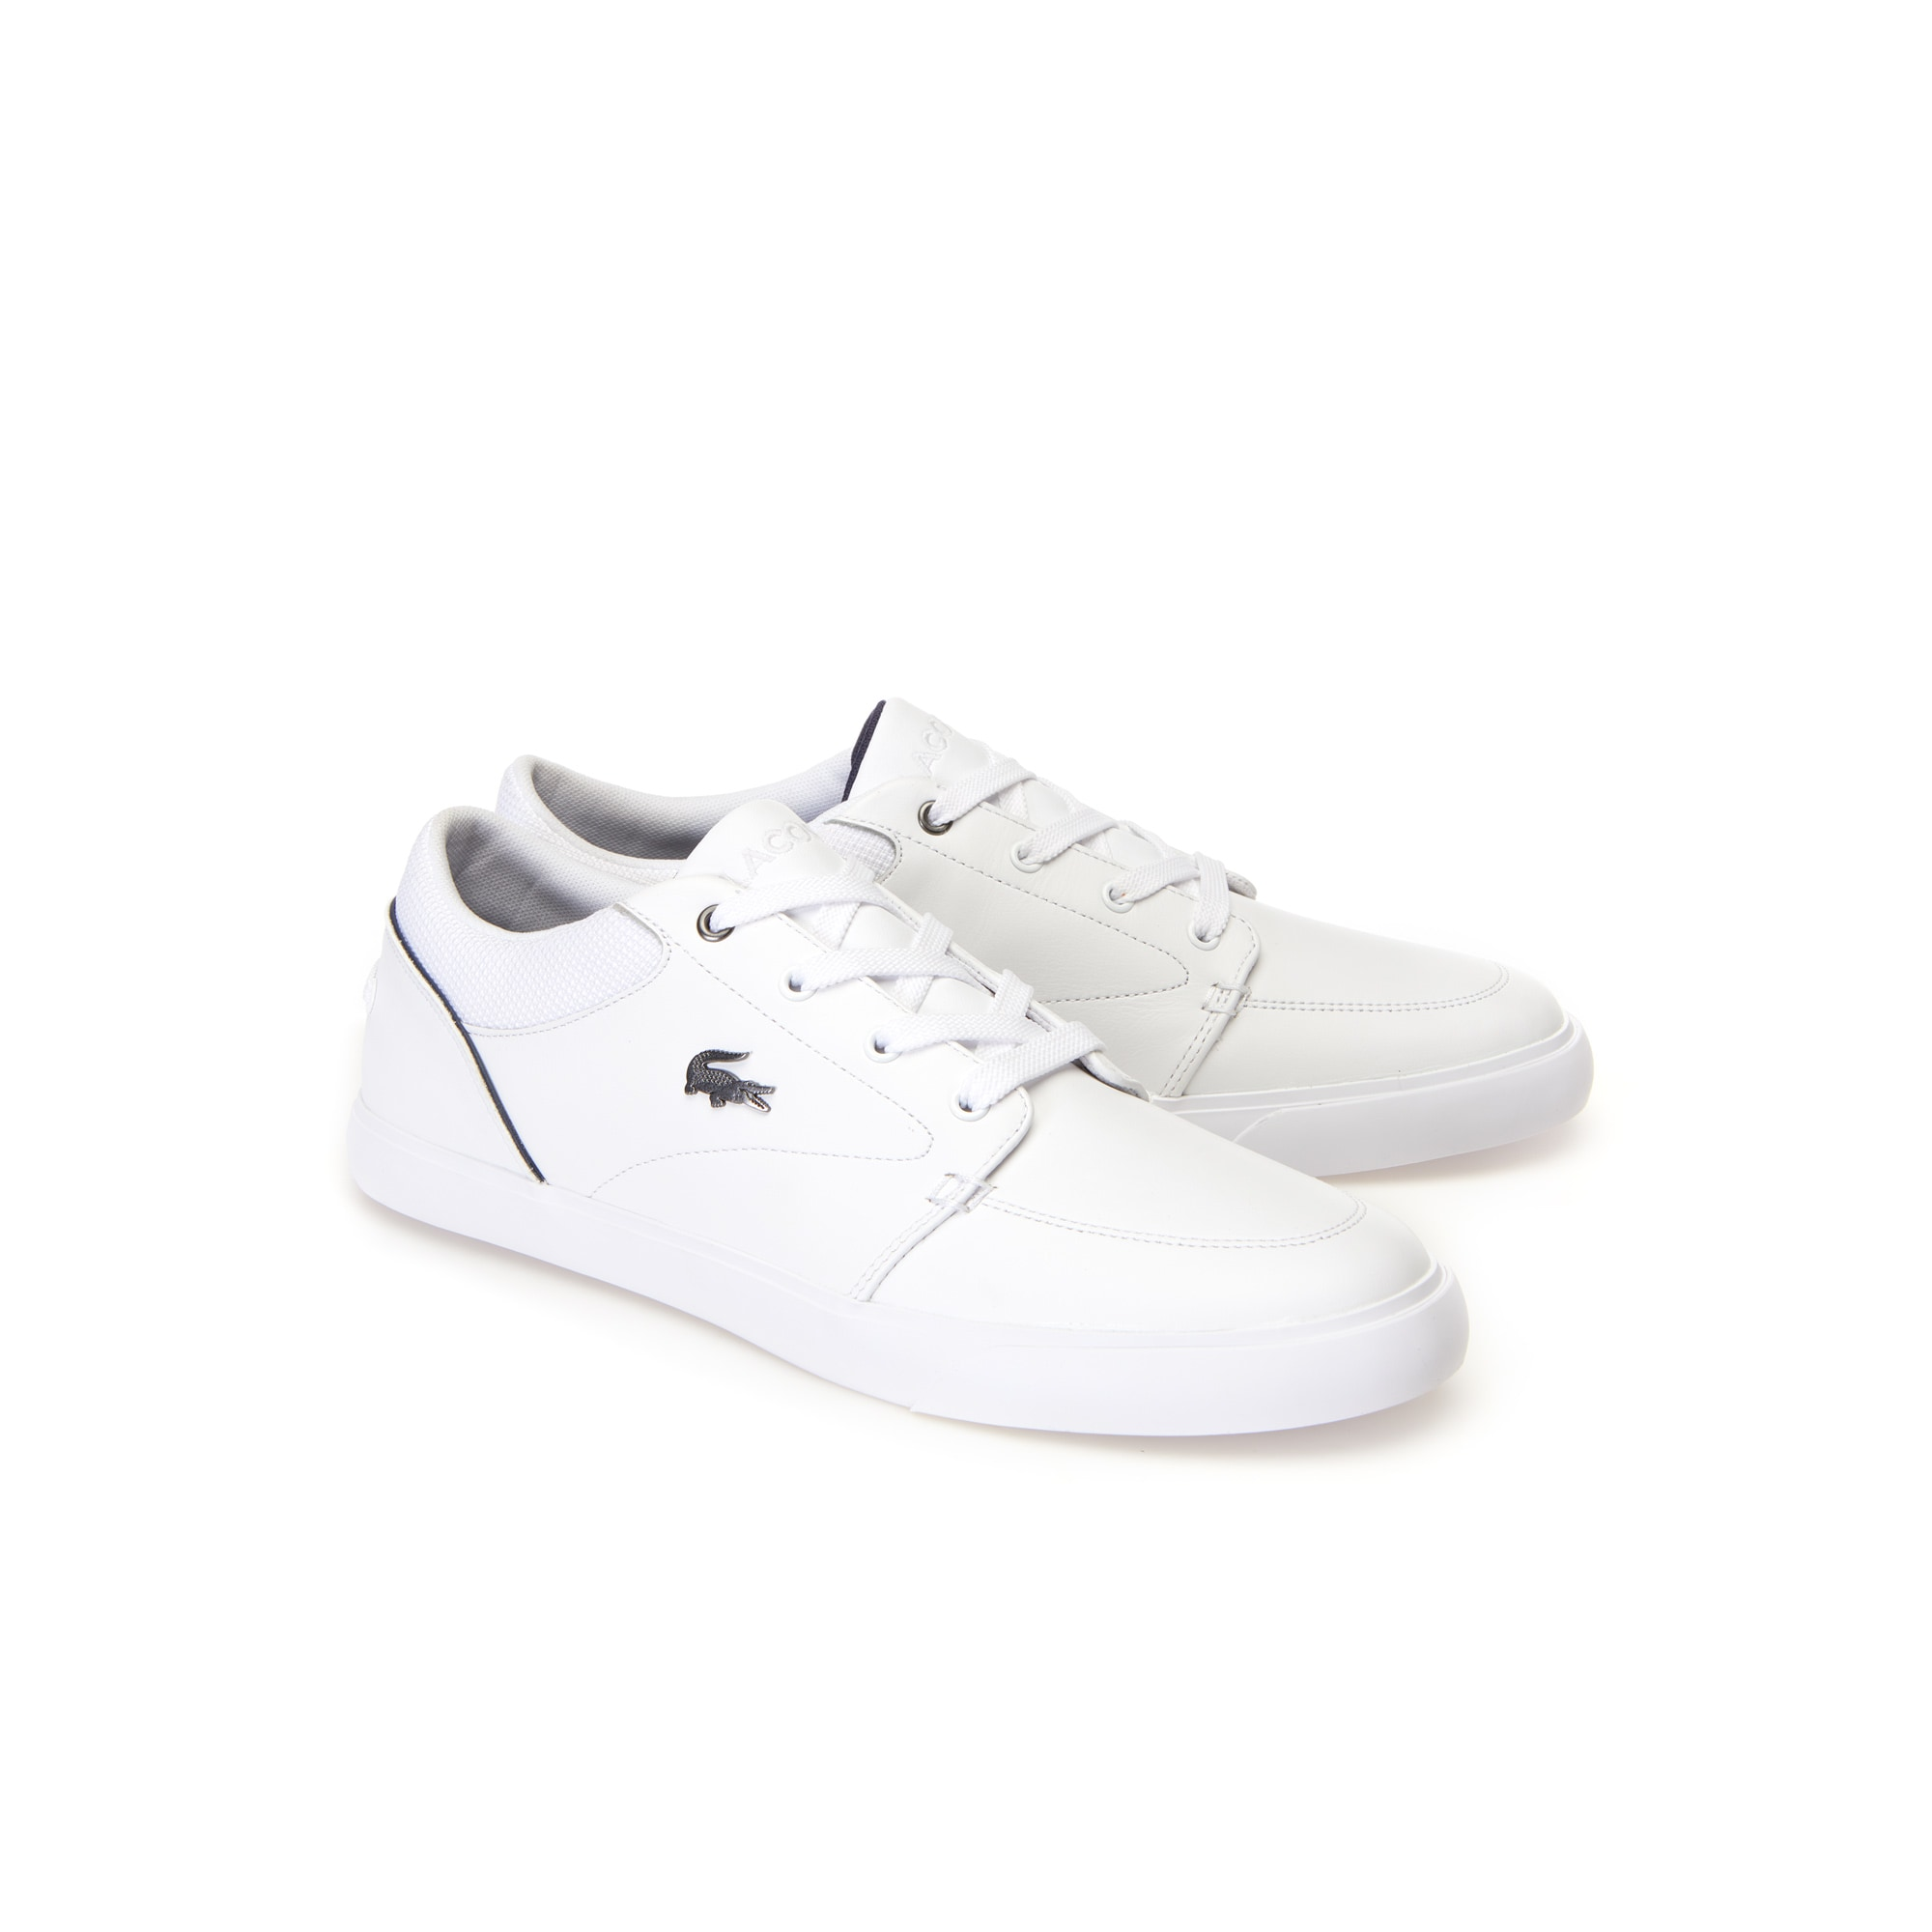 Men's Bayliss Leather Trainer